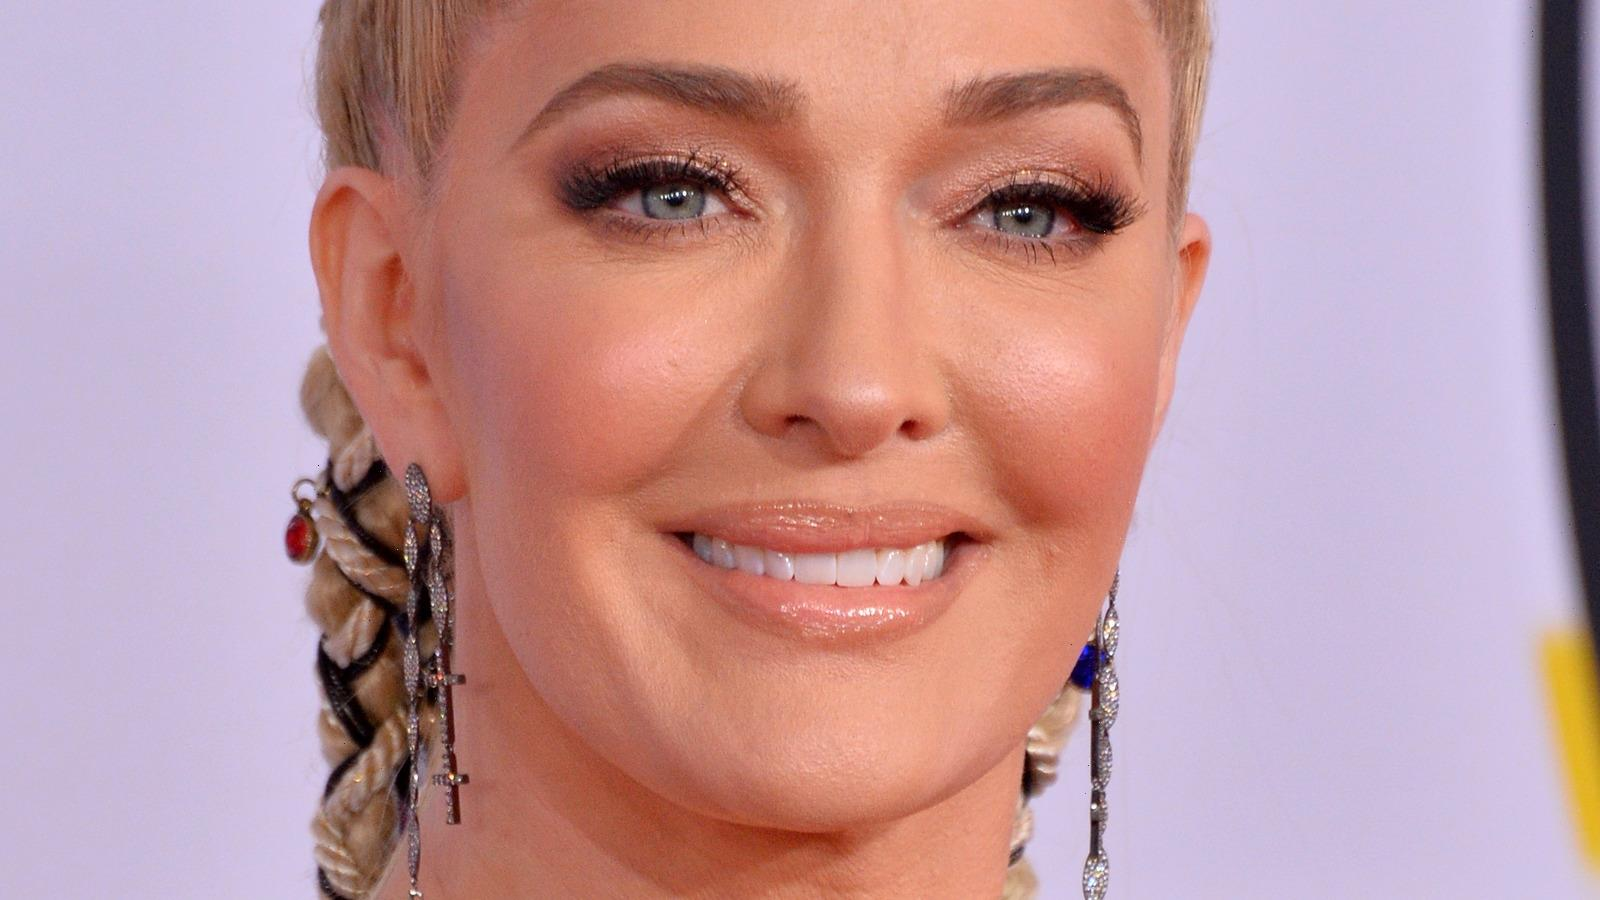 Heres What Erika Jayne Looks Like Without Makeup